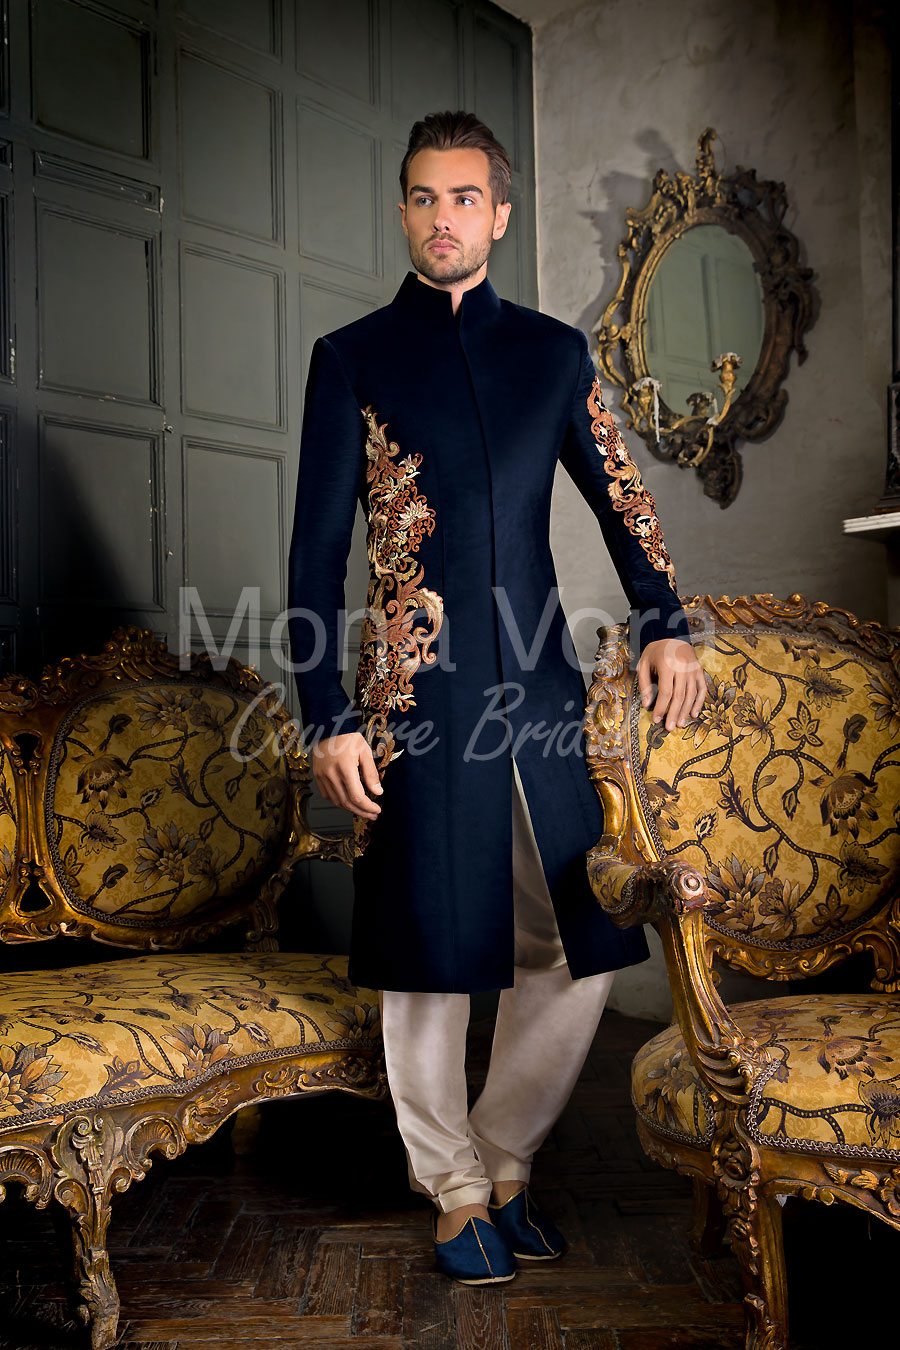 Mens Wedding Suits Online Asian Grooms Fusion Wear Indian Grooms Wedding Suit Outfit Online United States Uk Canada Australia Uae